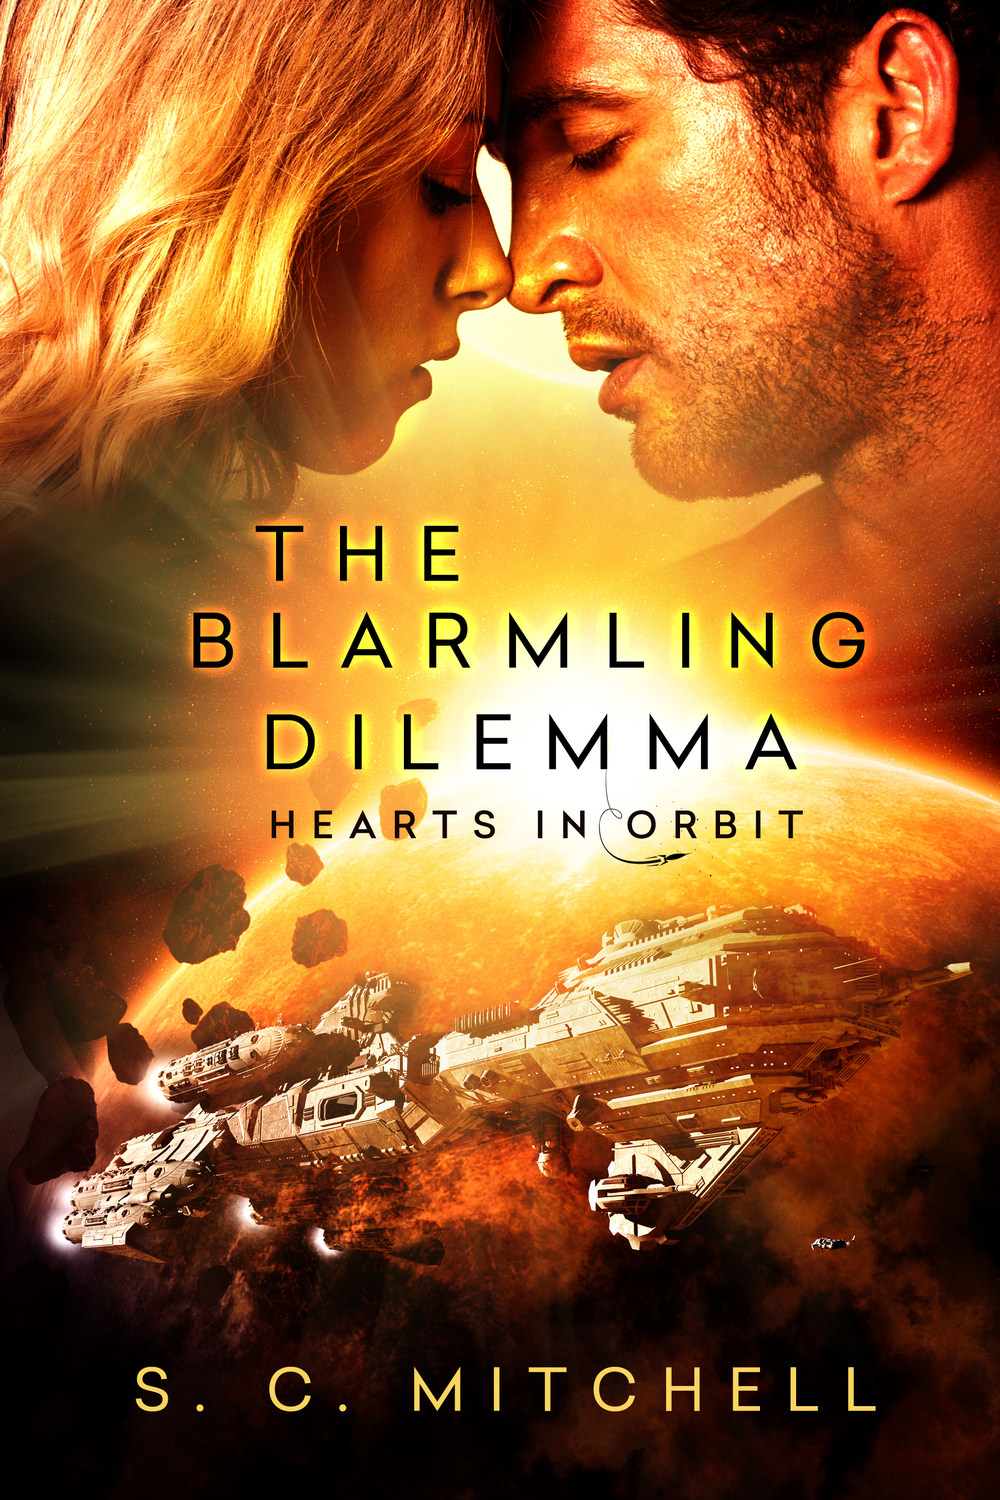 The Blarmling Dilemma by S. C. Mitchell